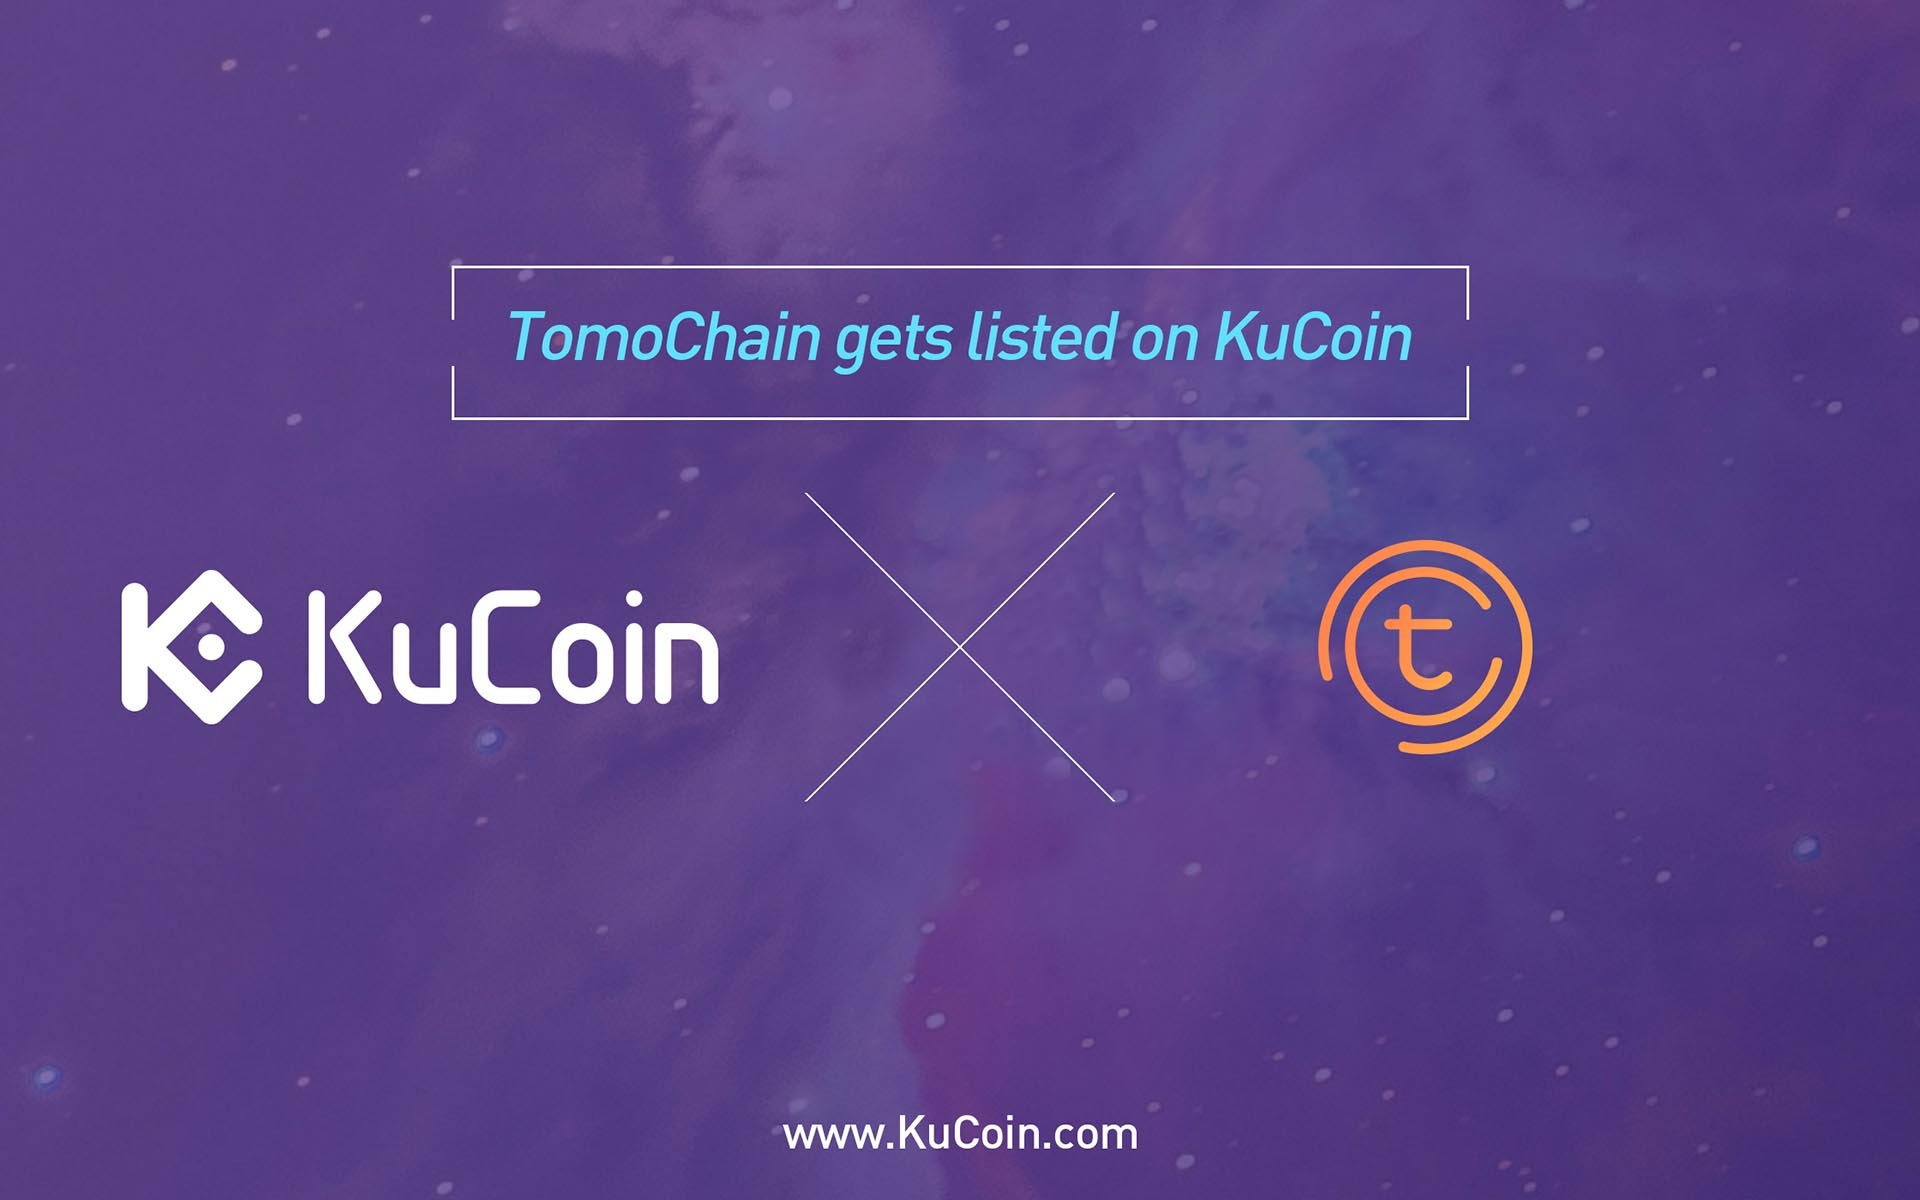 TomoChain (TOMO) Gets Listed on KuCoin!